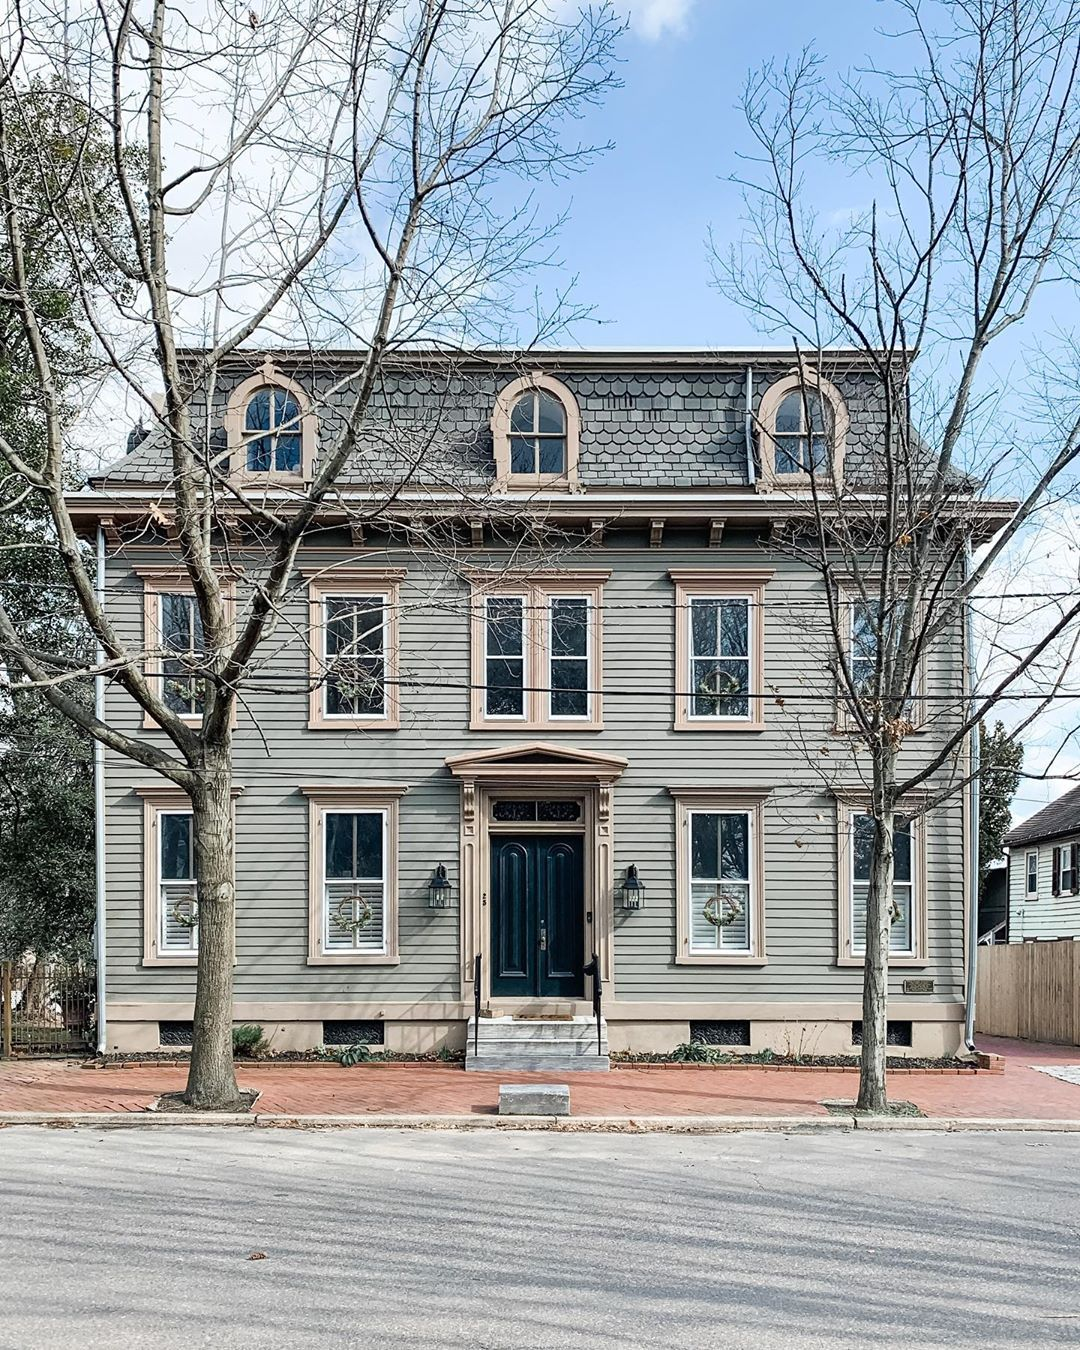 Sayre House On Instagram Swipe To Learn More We Often Nerd Out As We Revel Over The Facade Of Our Home In 2020 House Exterior House Victorian Style Homes